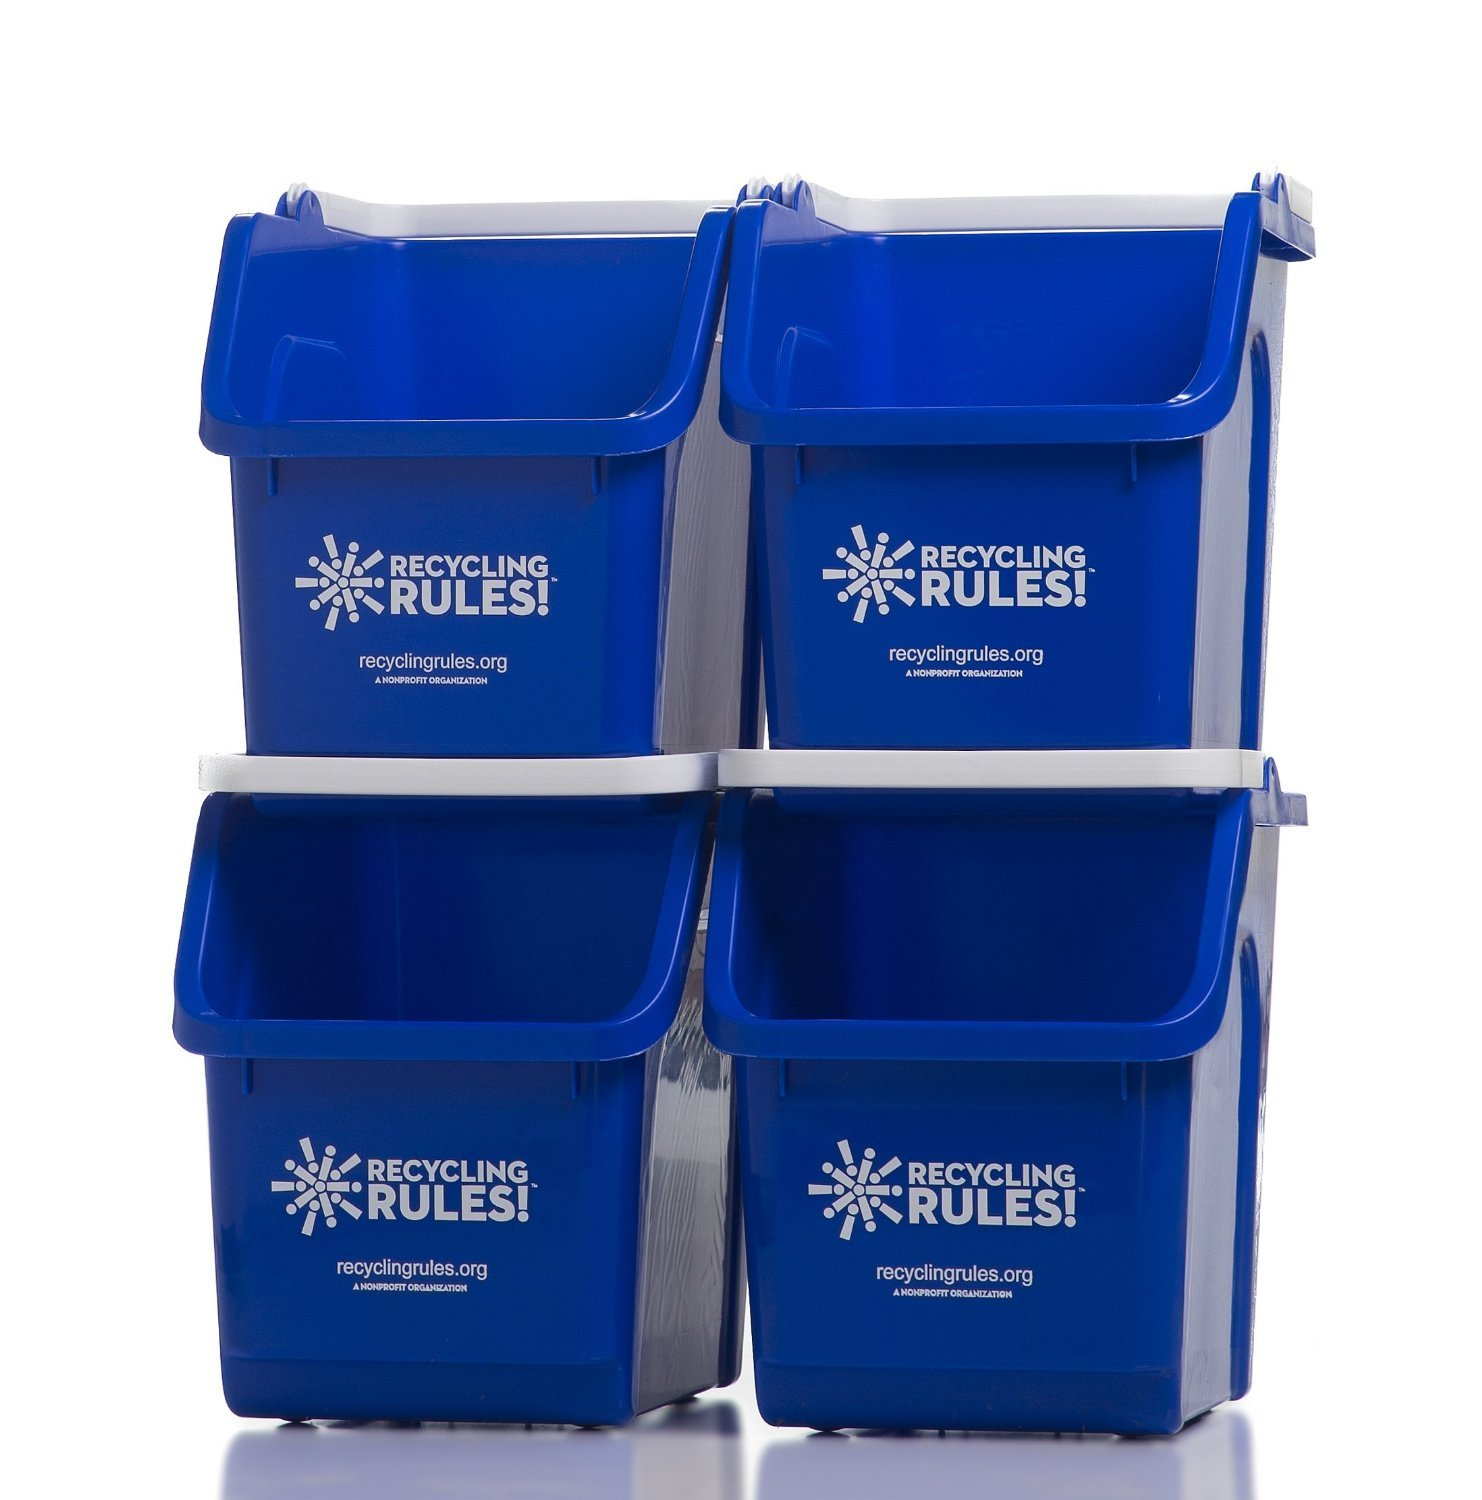 Perfect ikea recycle bins homesfeed - Recycle containers for home use ...